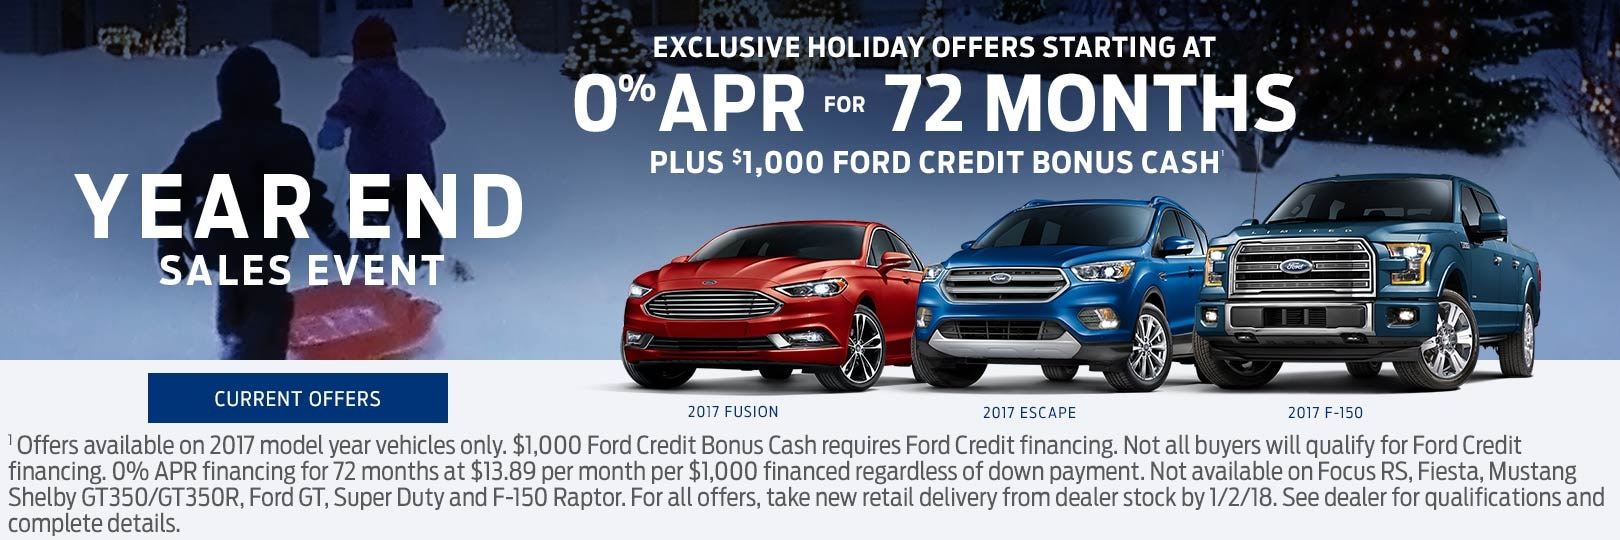 Baxter Ford Omaha Used Cars Best Cars - Ford dealers omaha